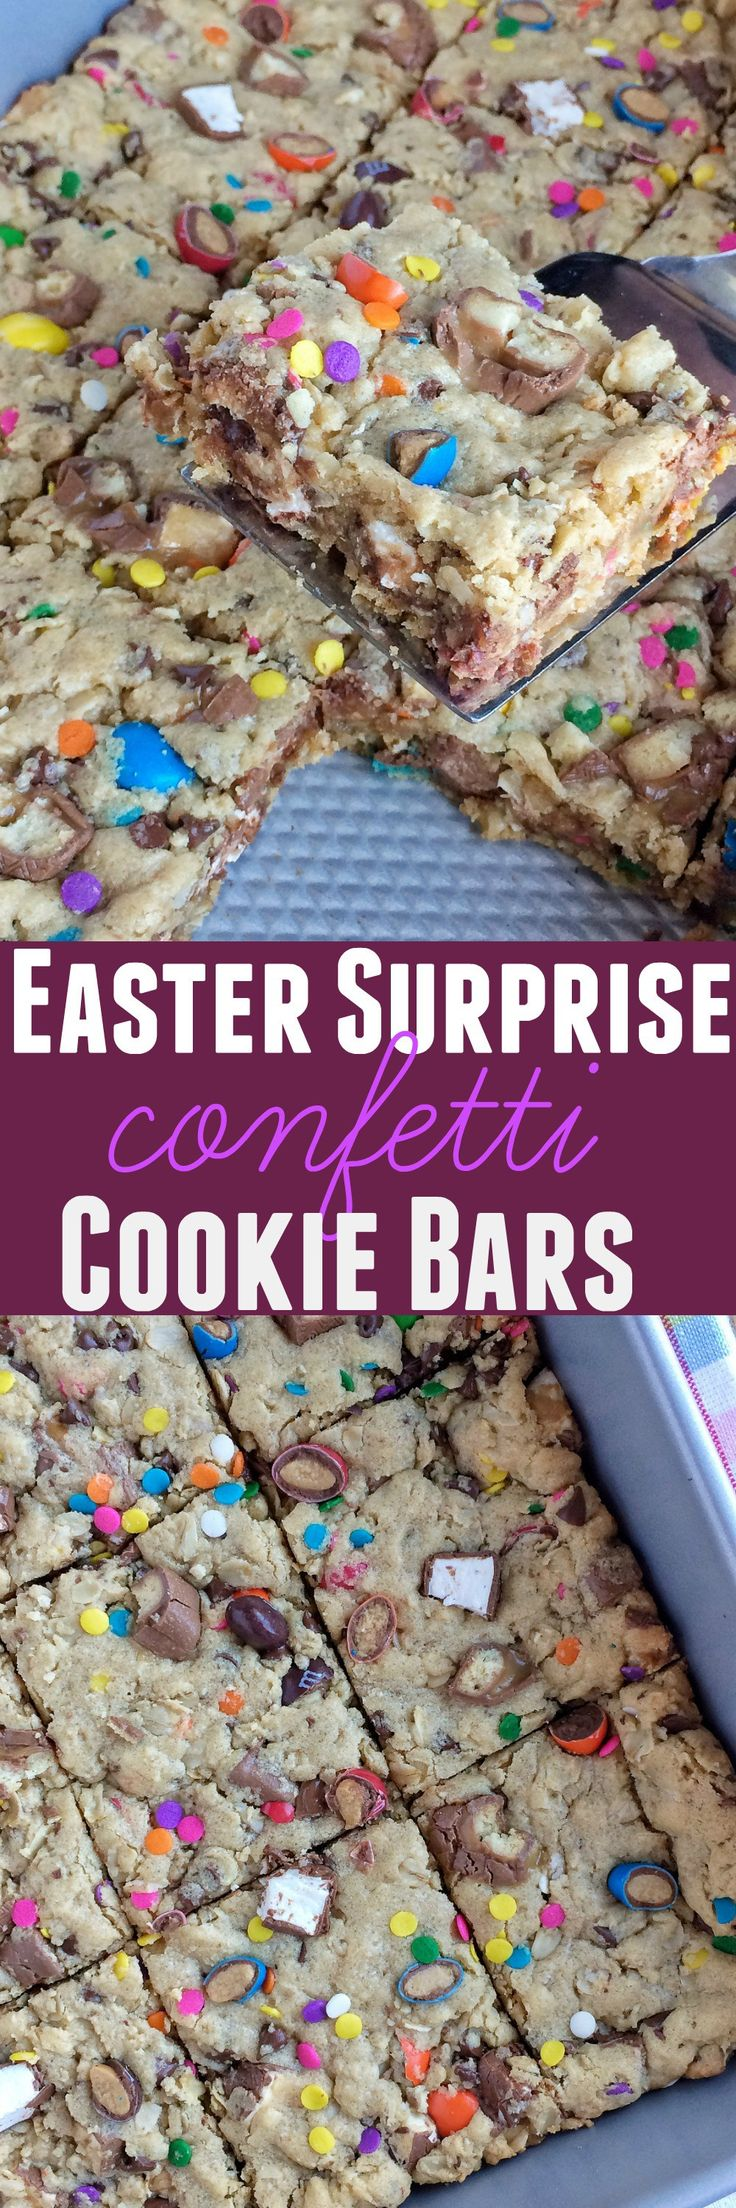 Soft cookie bars loaded with peanut butter, oats, chocolate chips, and candy bars! Plus confetti springtime sprinkles that are perfect for Easter.